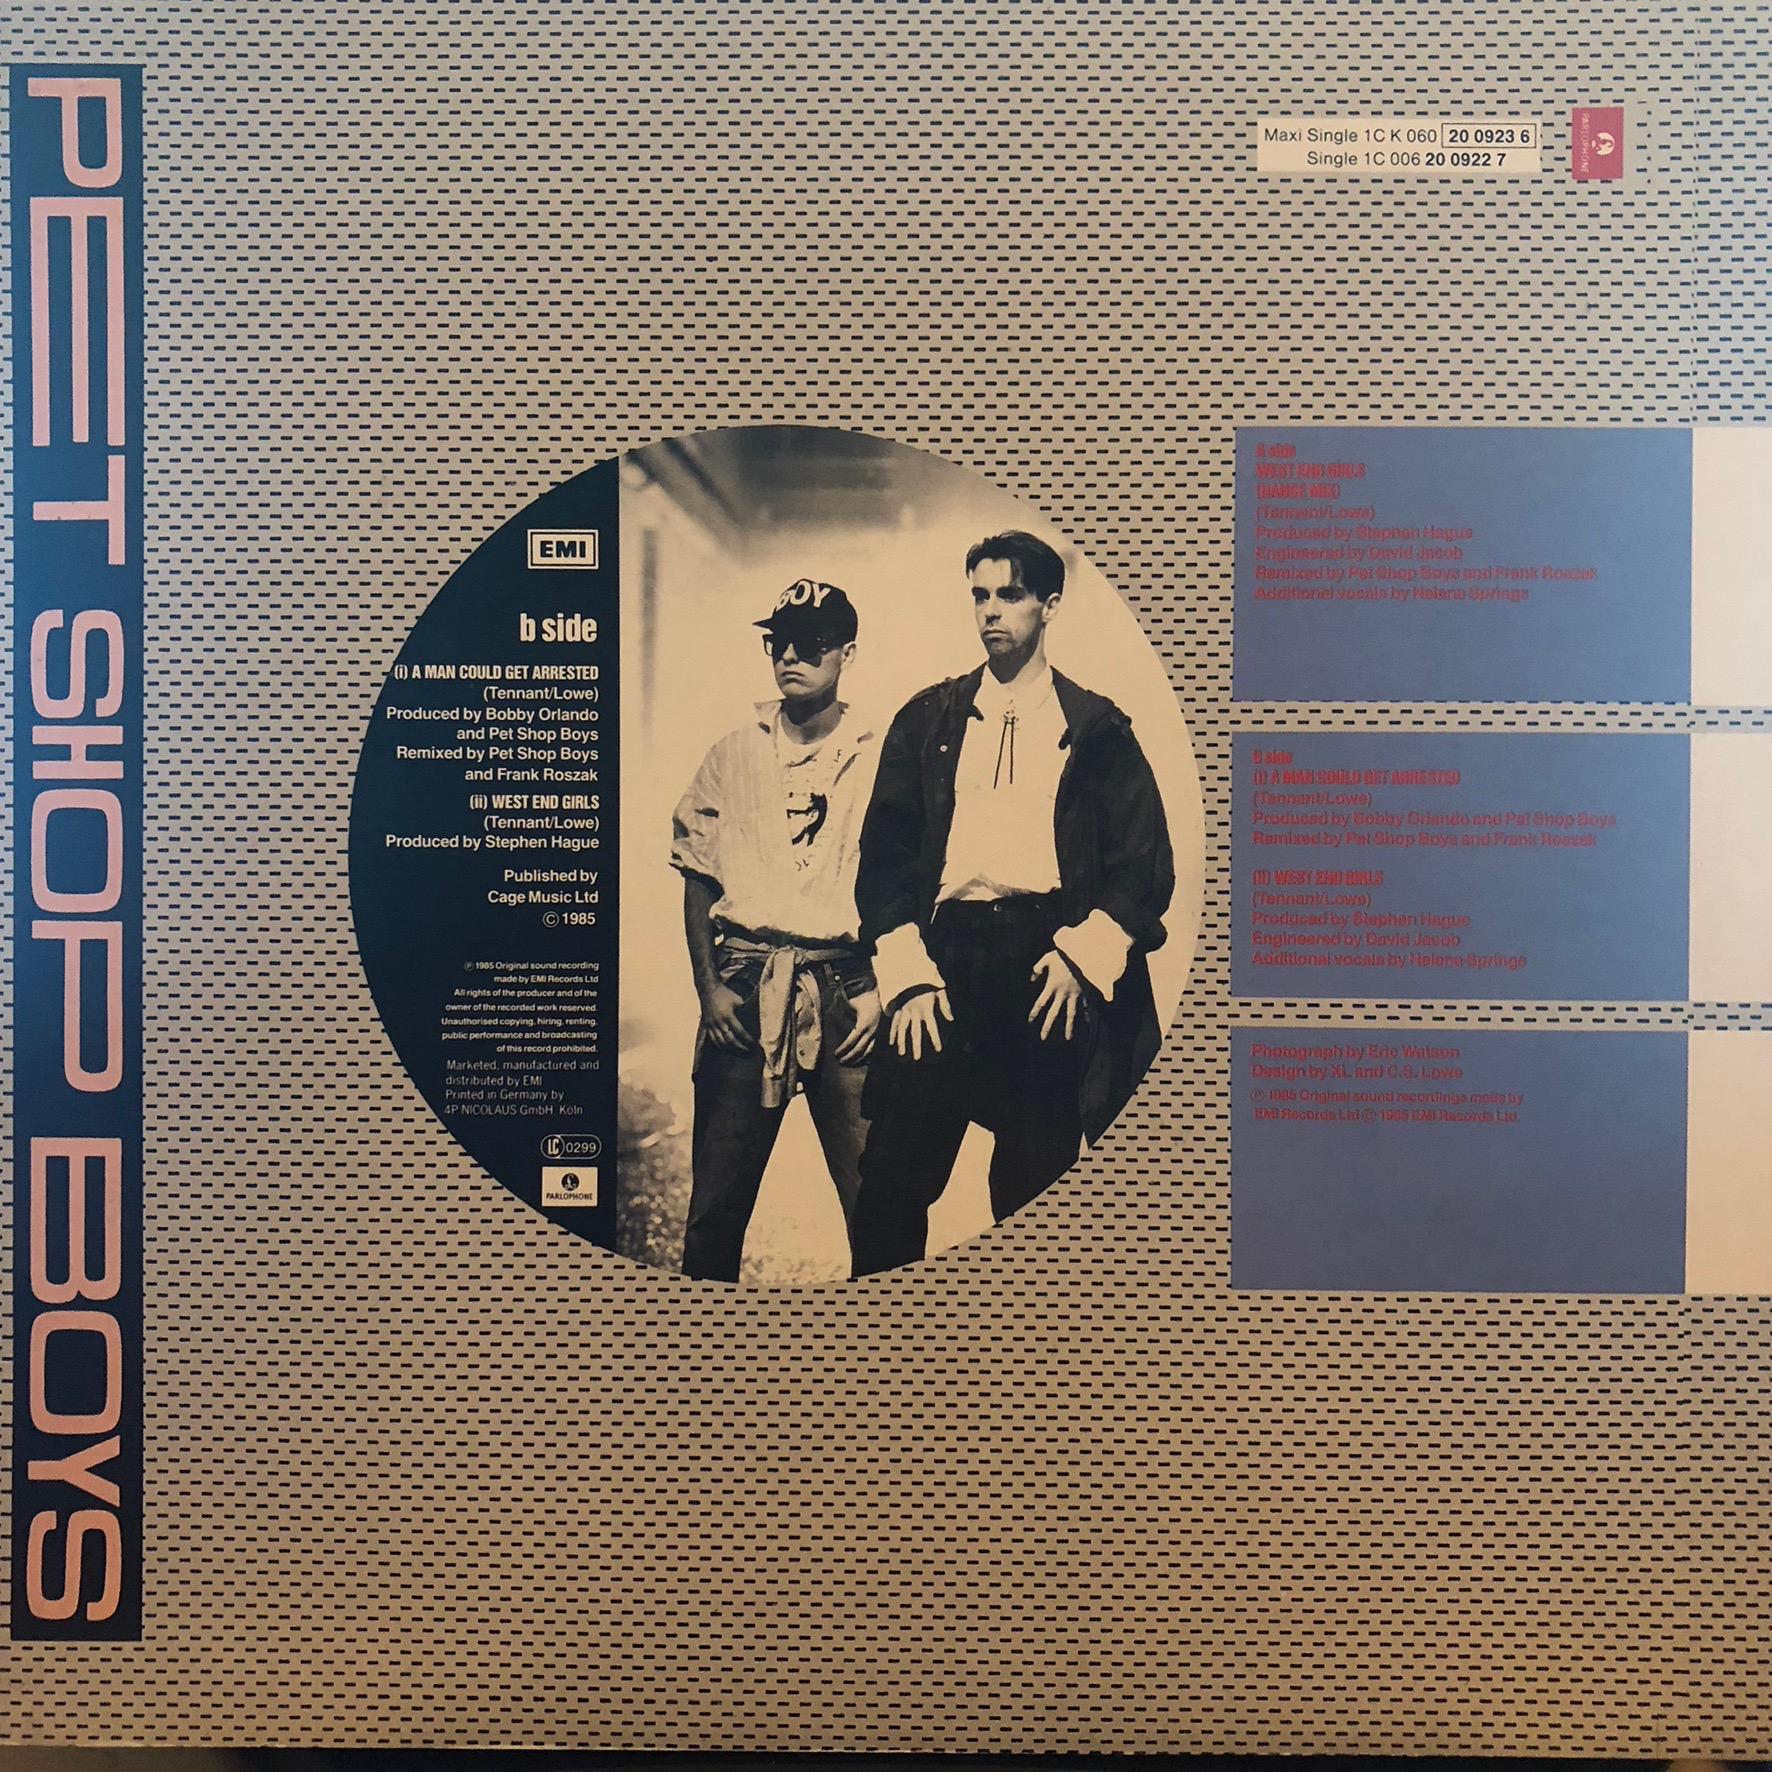 Pet Shop Boys - West End Girls - Back Cover